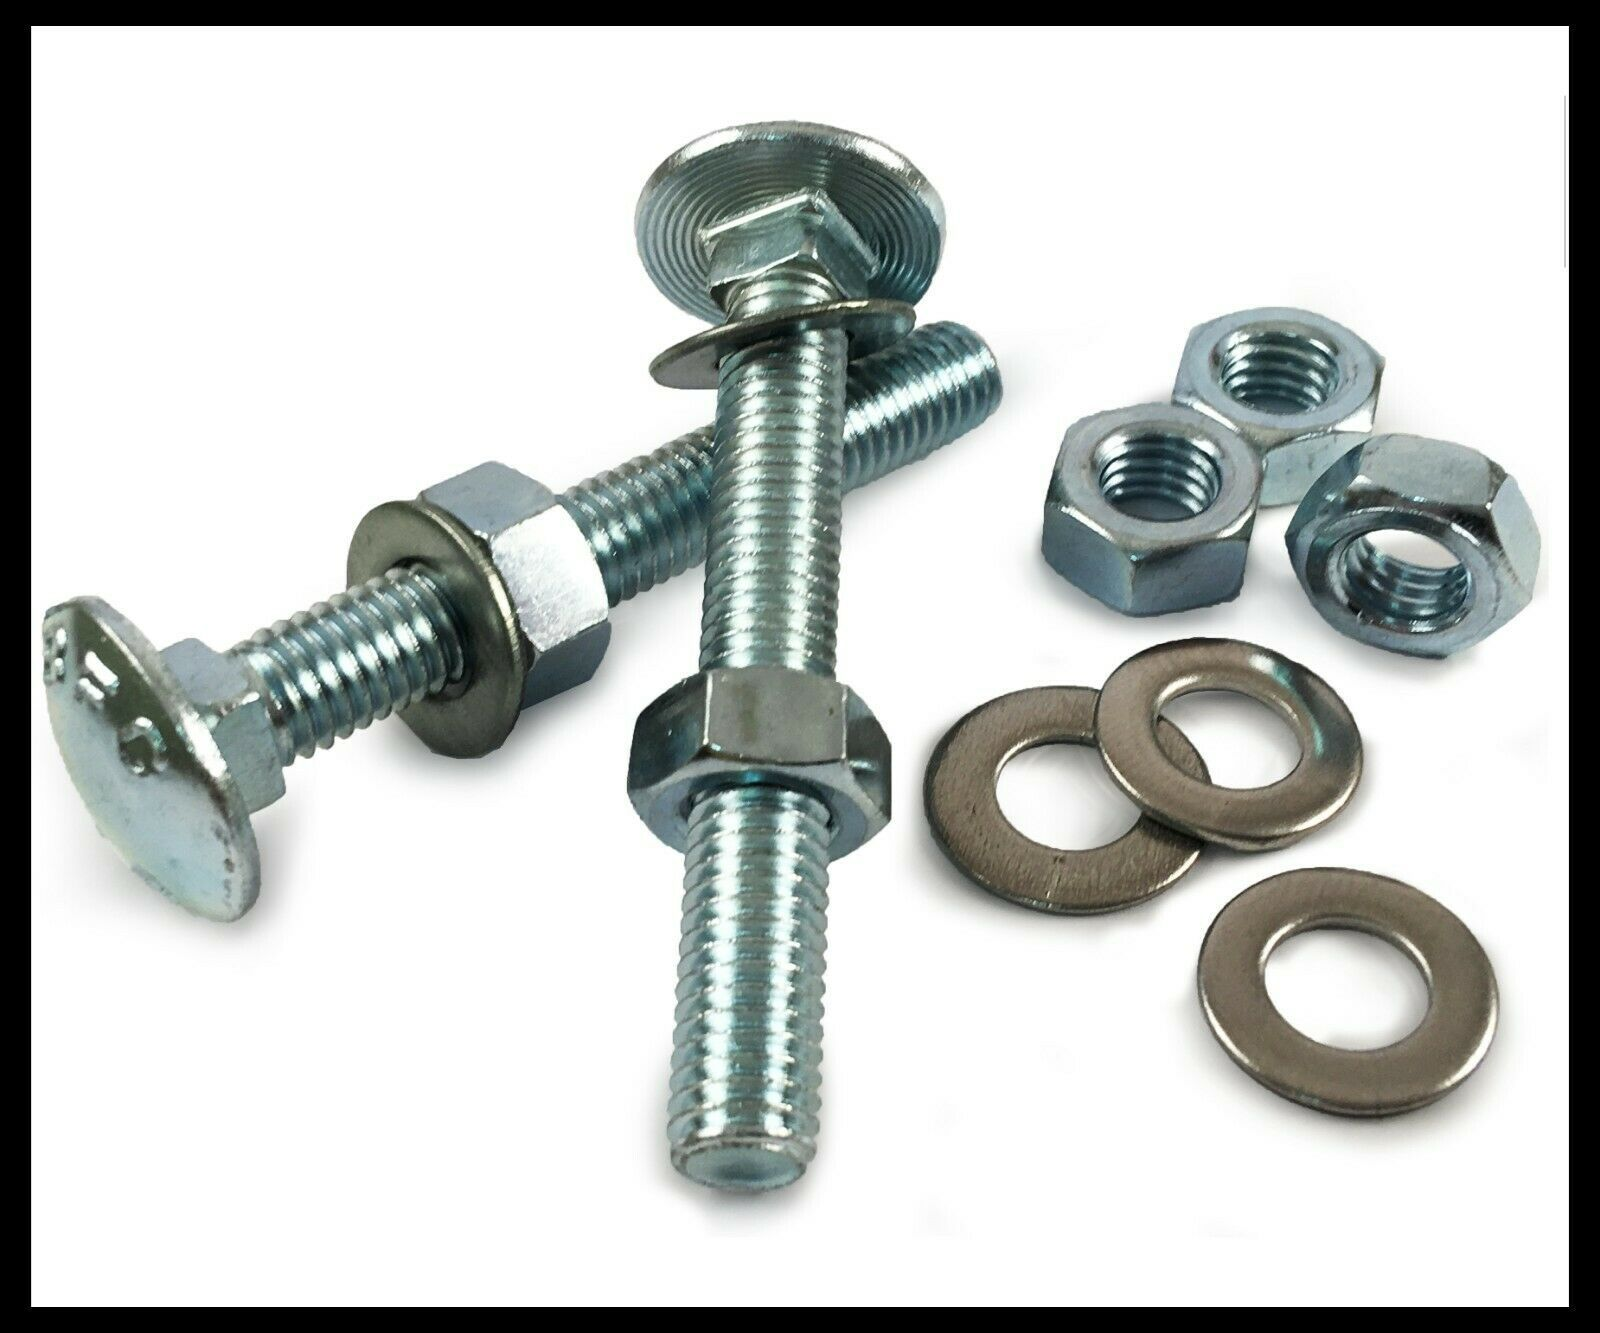 M12 CARRIAGE BOLT COACH SCREW WITH HEX FULL NUTS CUP SQUARE